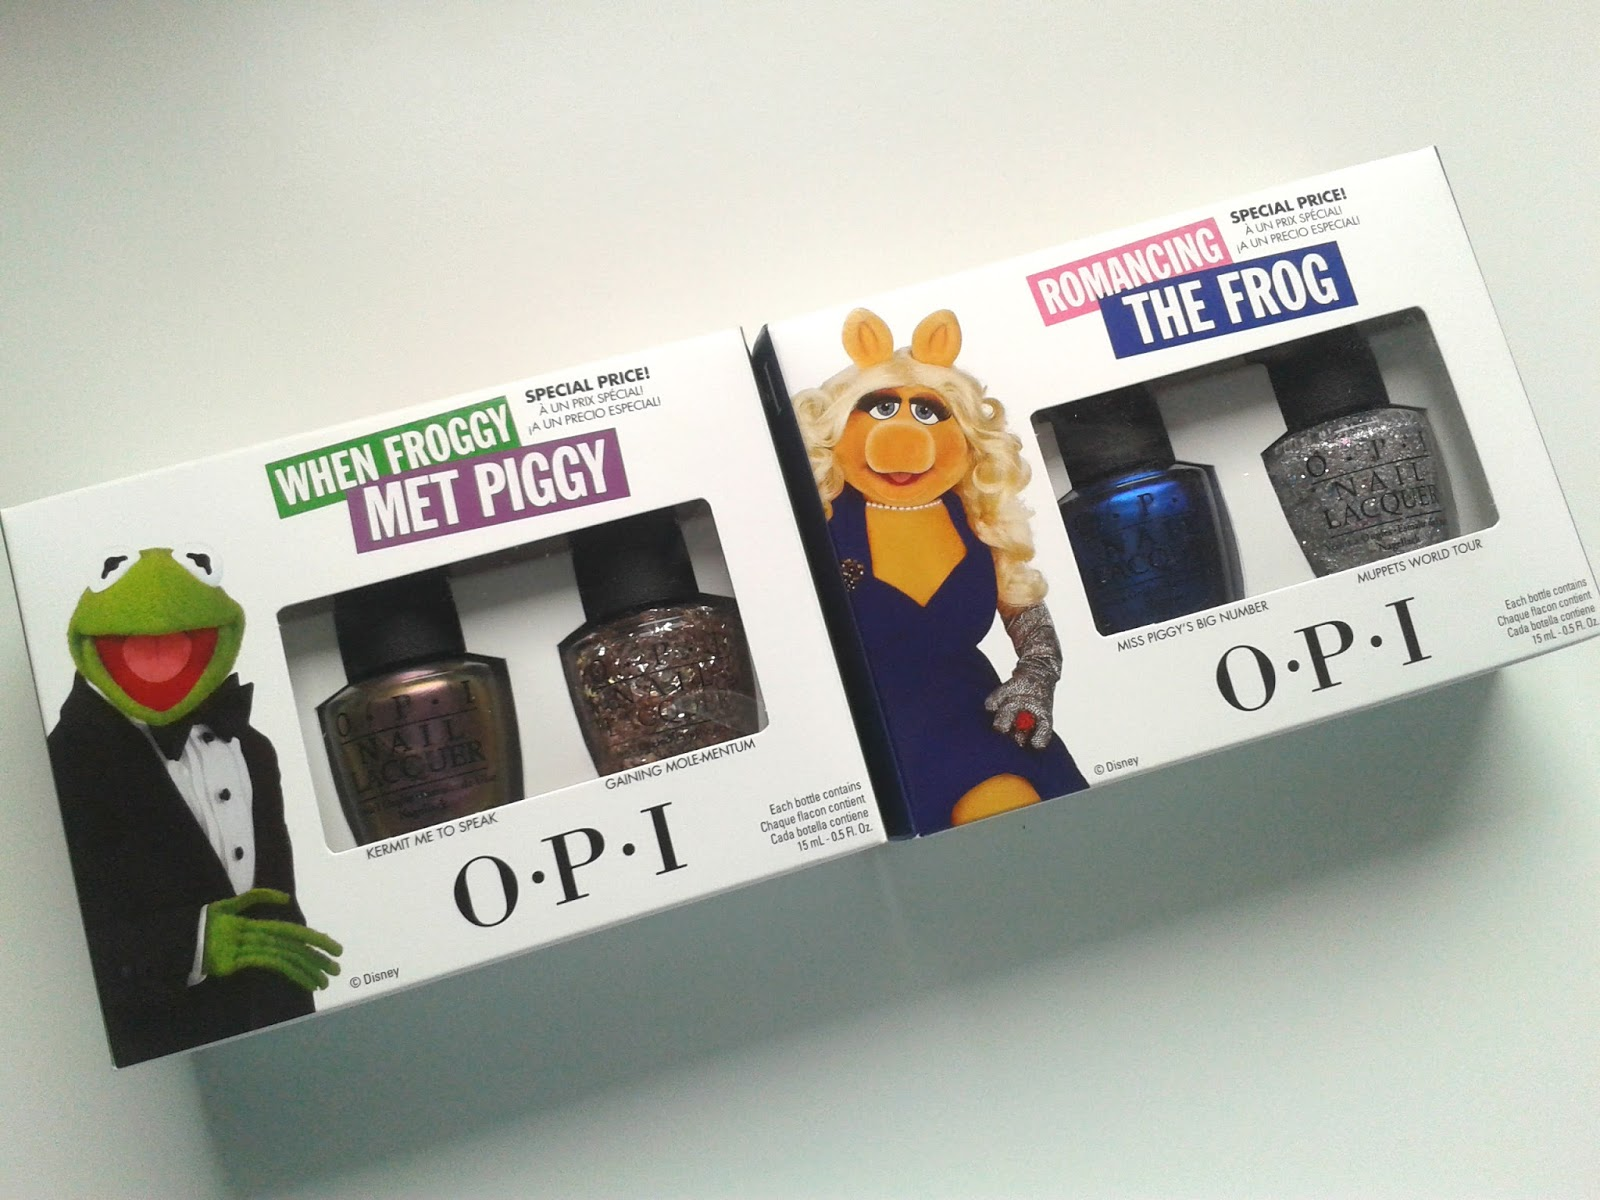 OPI When Froggy Met Piggy Duo OPI Romancing the Frog Duo muppets most wanted review